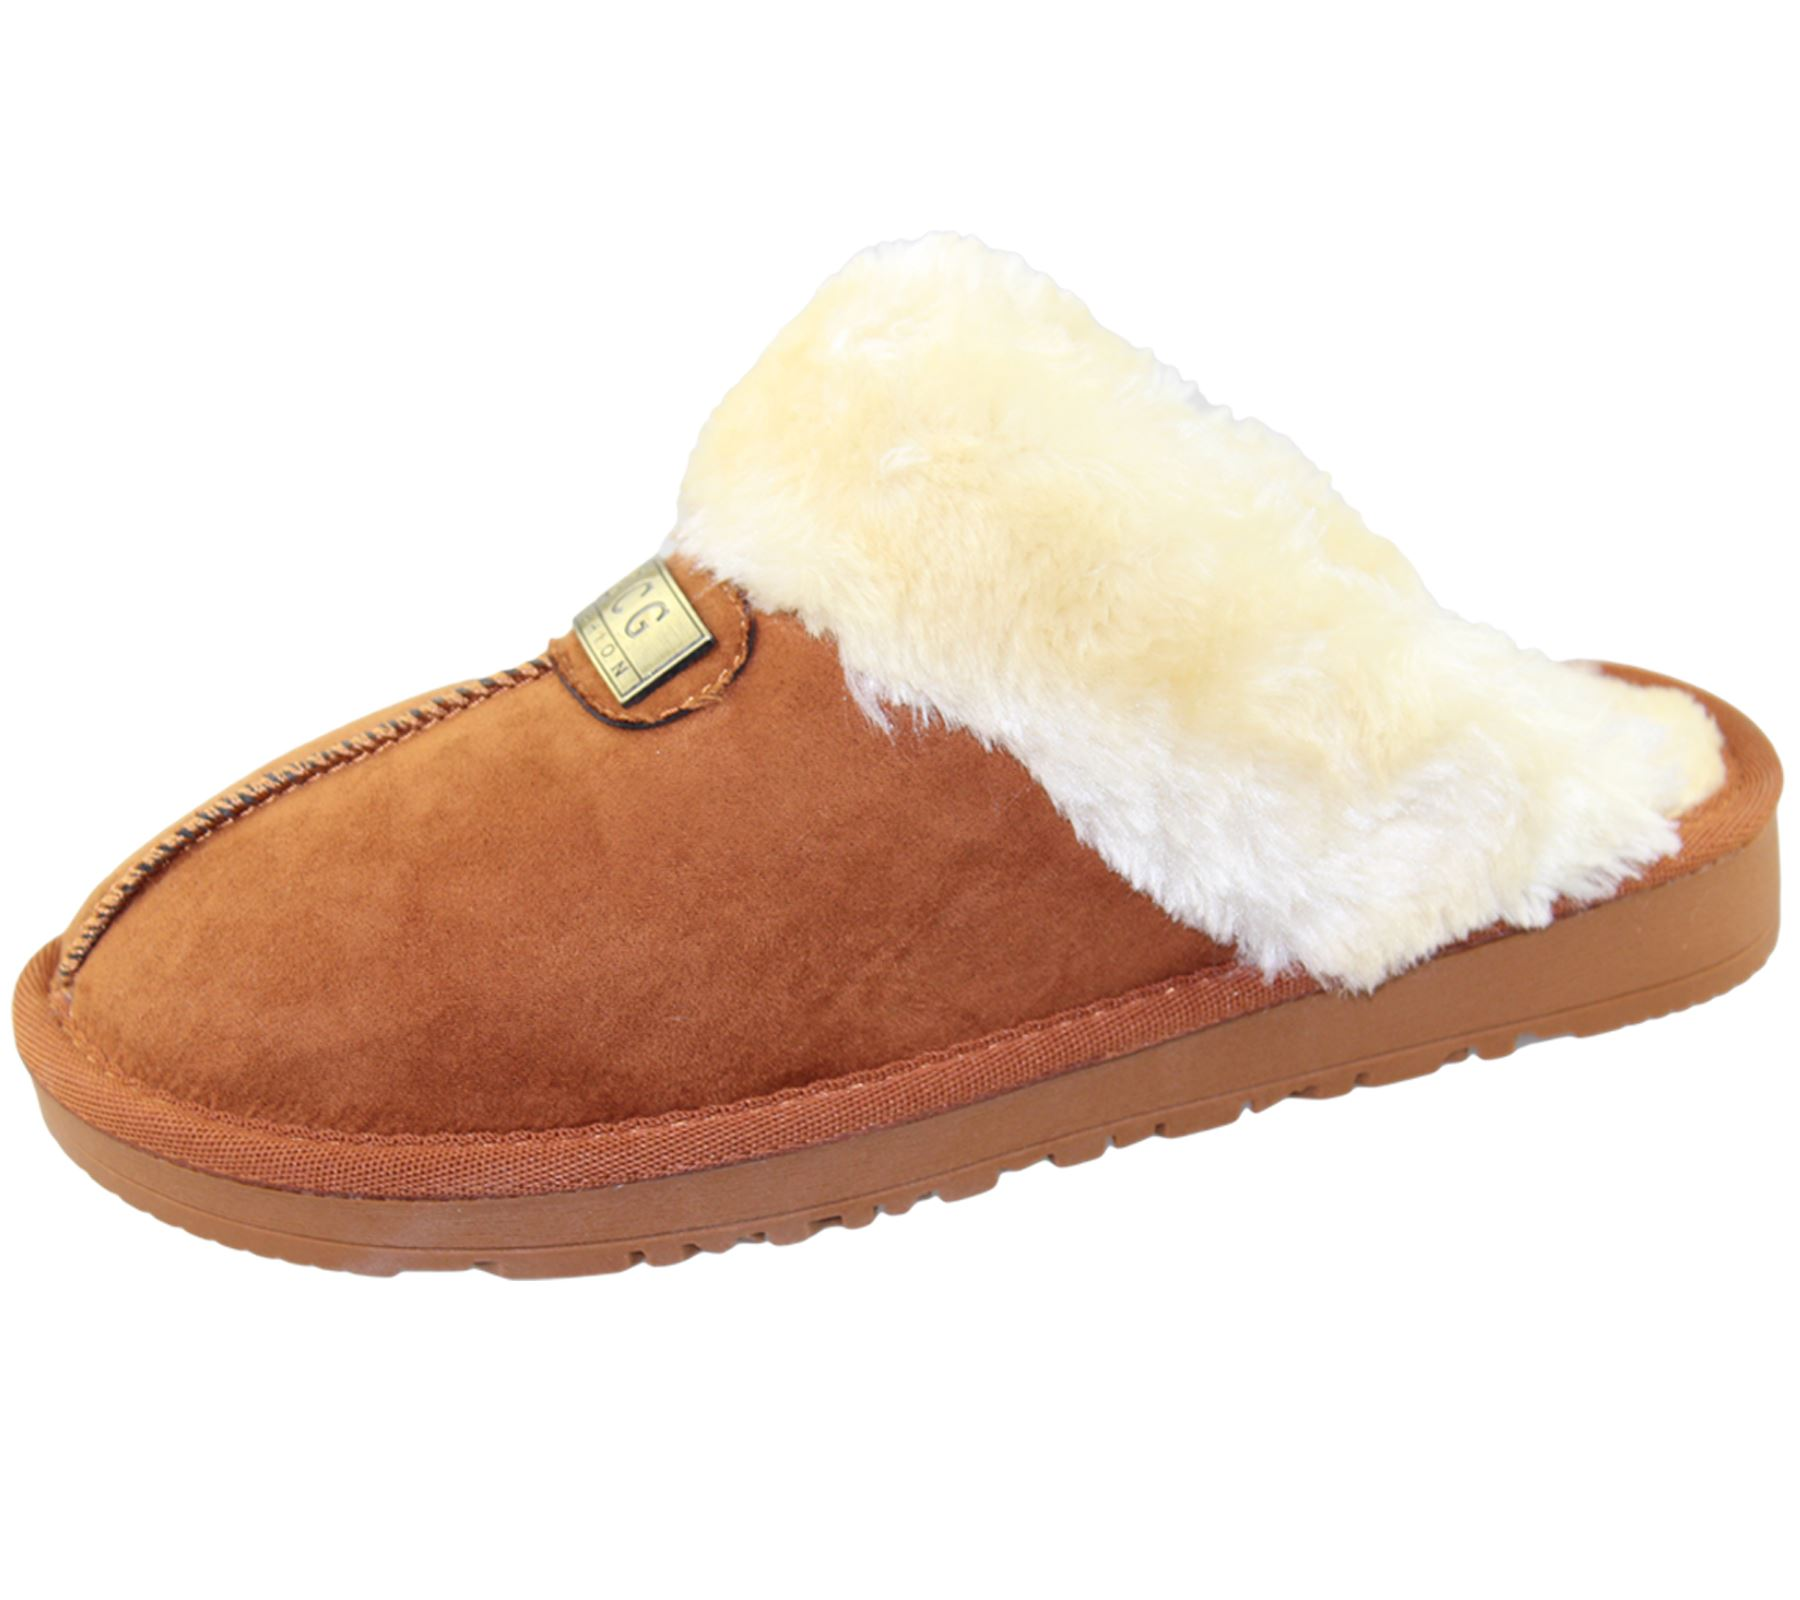 Womens-Fur-Lined-Slippers-Ladies-Mules-Non-Slip-Rubber-Sole-Shoes miniatura 23